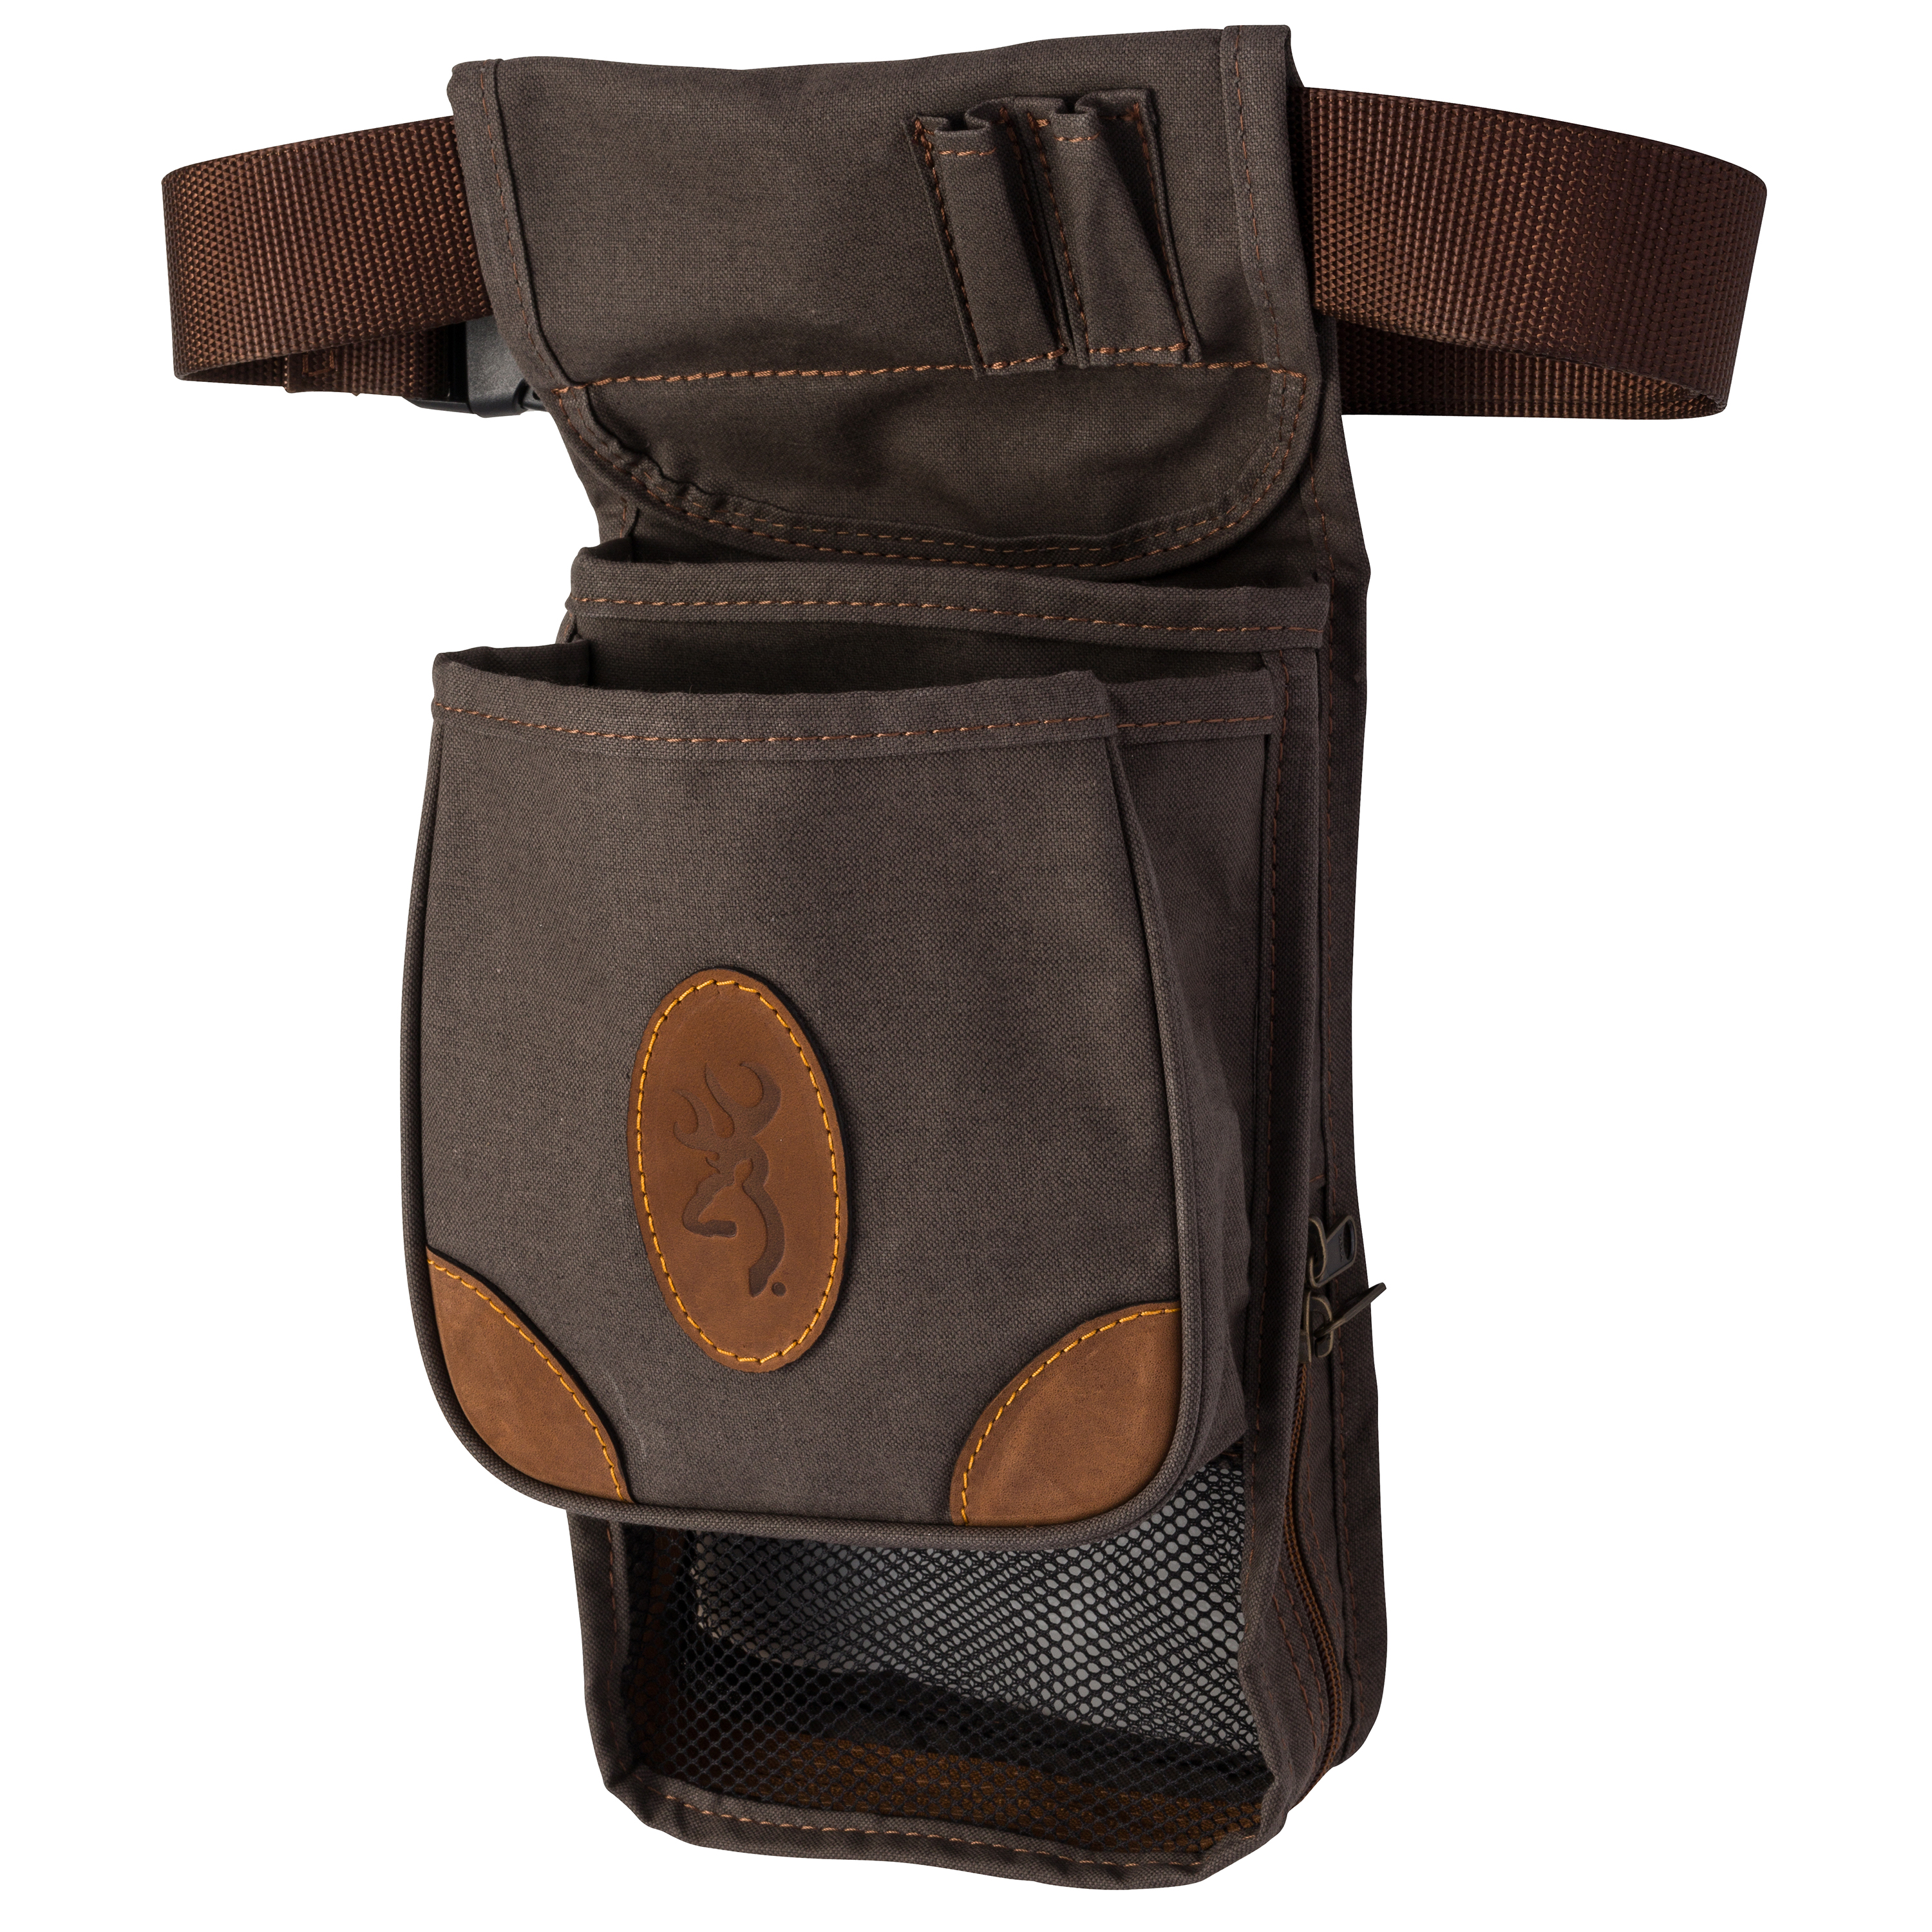 Browning Lona Canvas/Leather Large Deluxe Shell Pouch, Flint/Brown